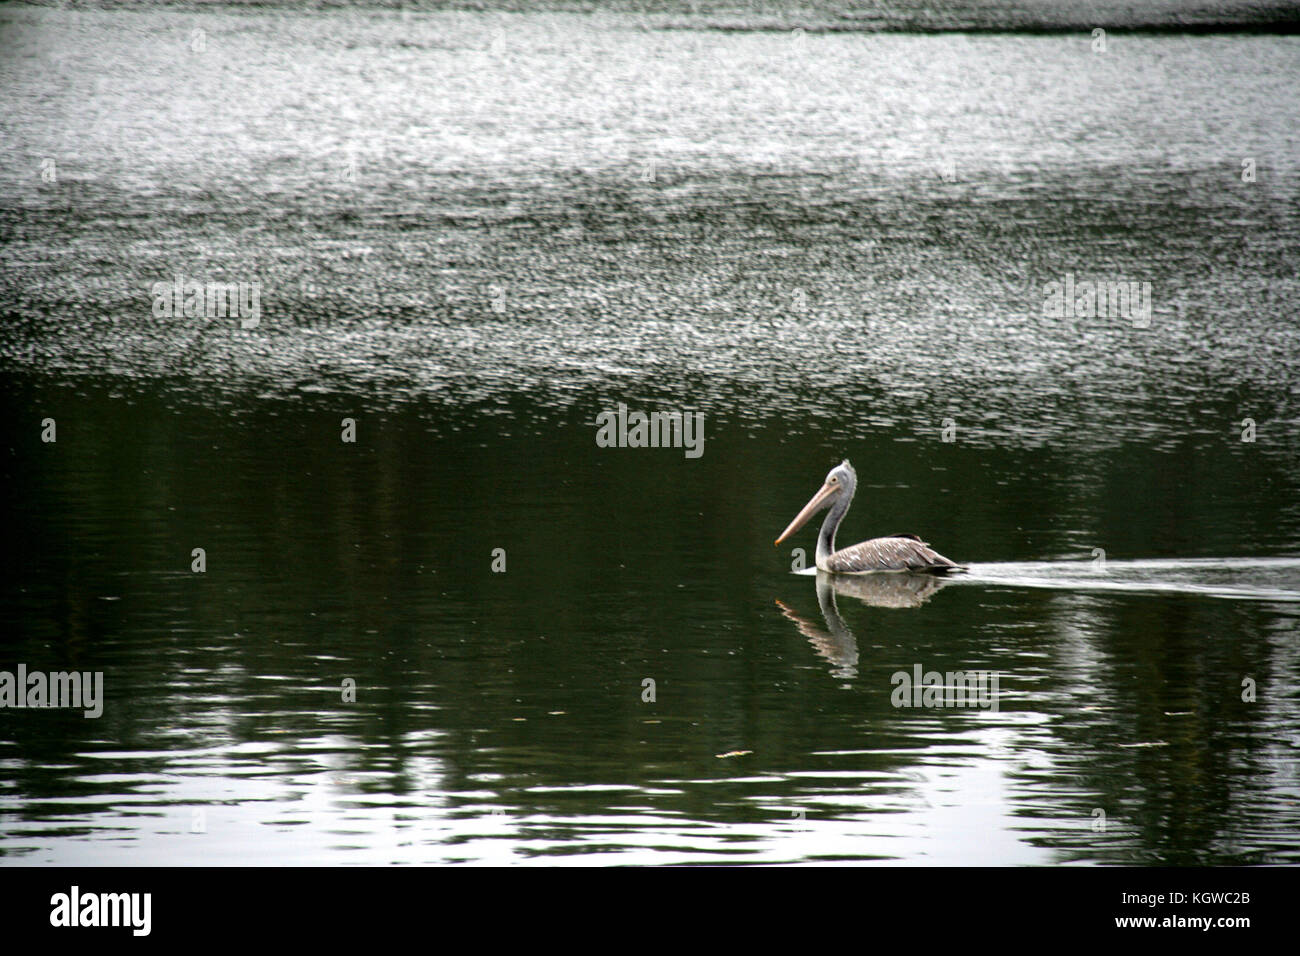 Swan, white water bird with long neck and beak, swimming swiftly in a lake - Stock Image